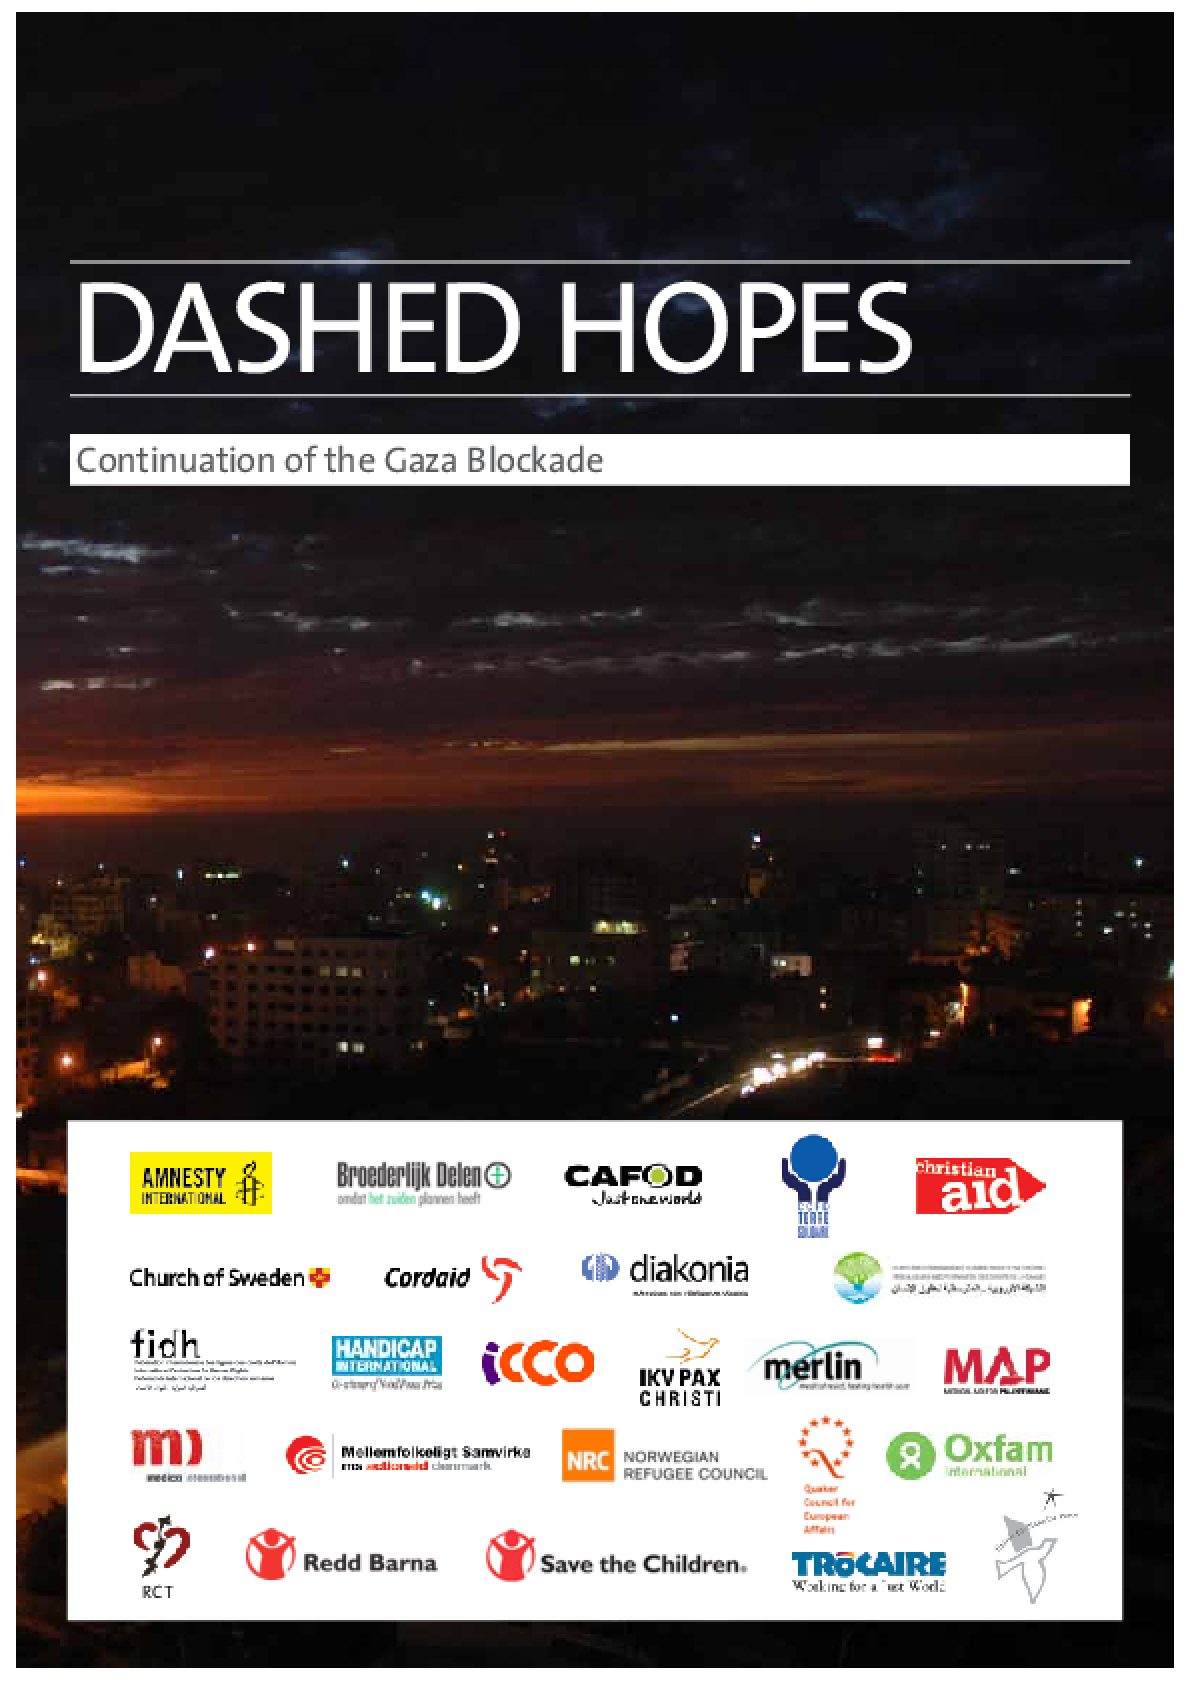 Dashed Hopes: Continuation of the Gaza blockade